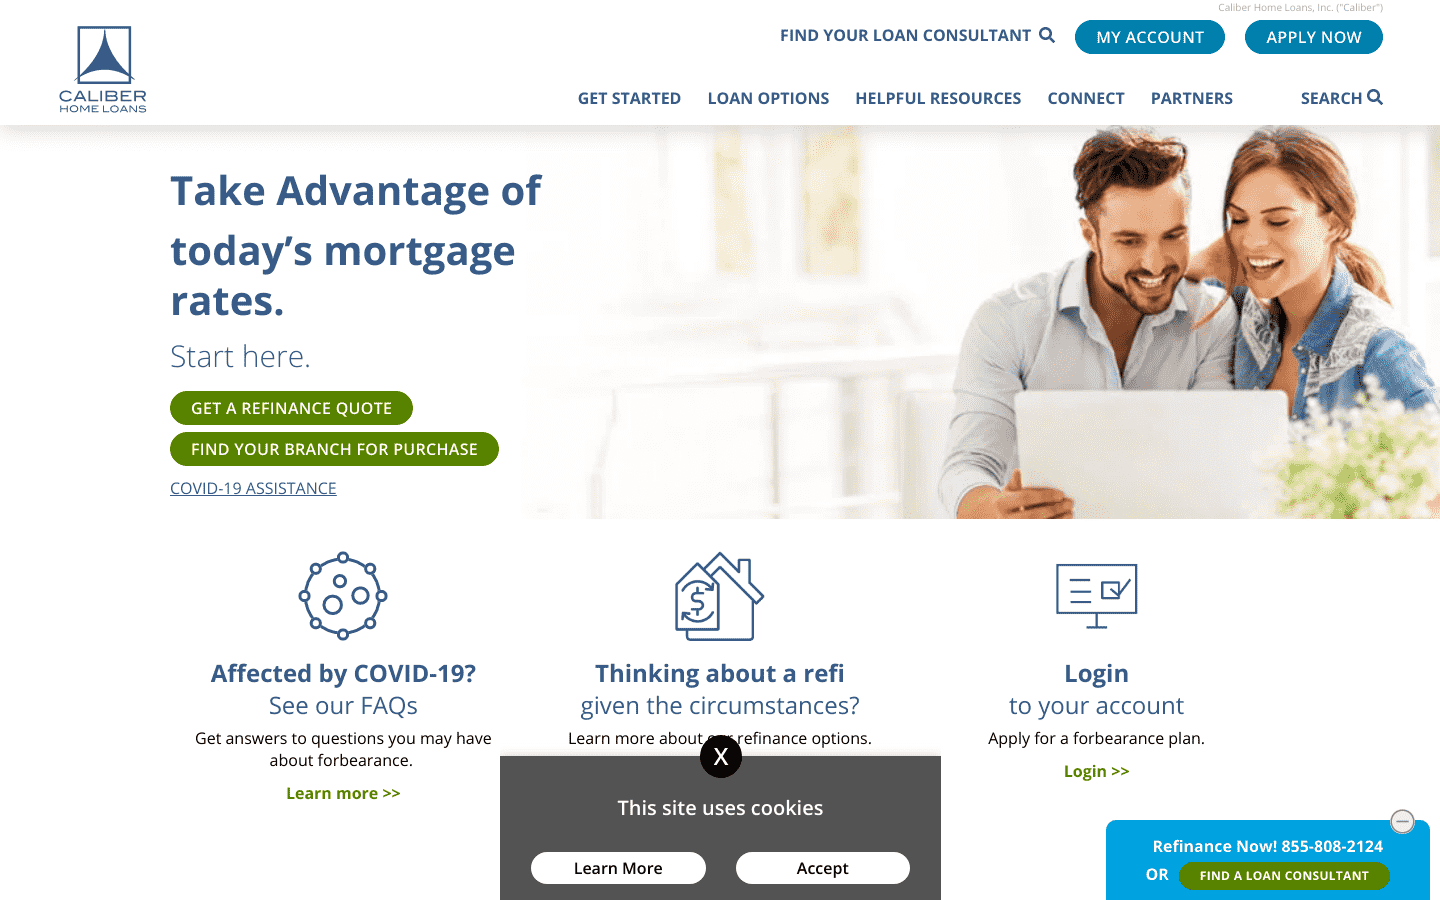 Caliber Home Loans reviews and complaints